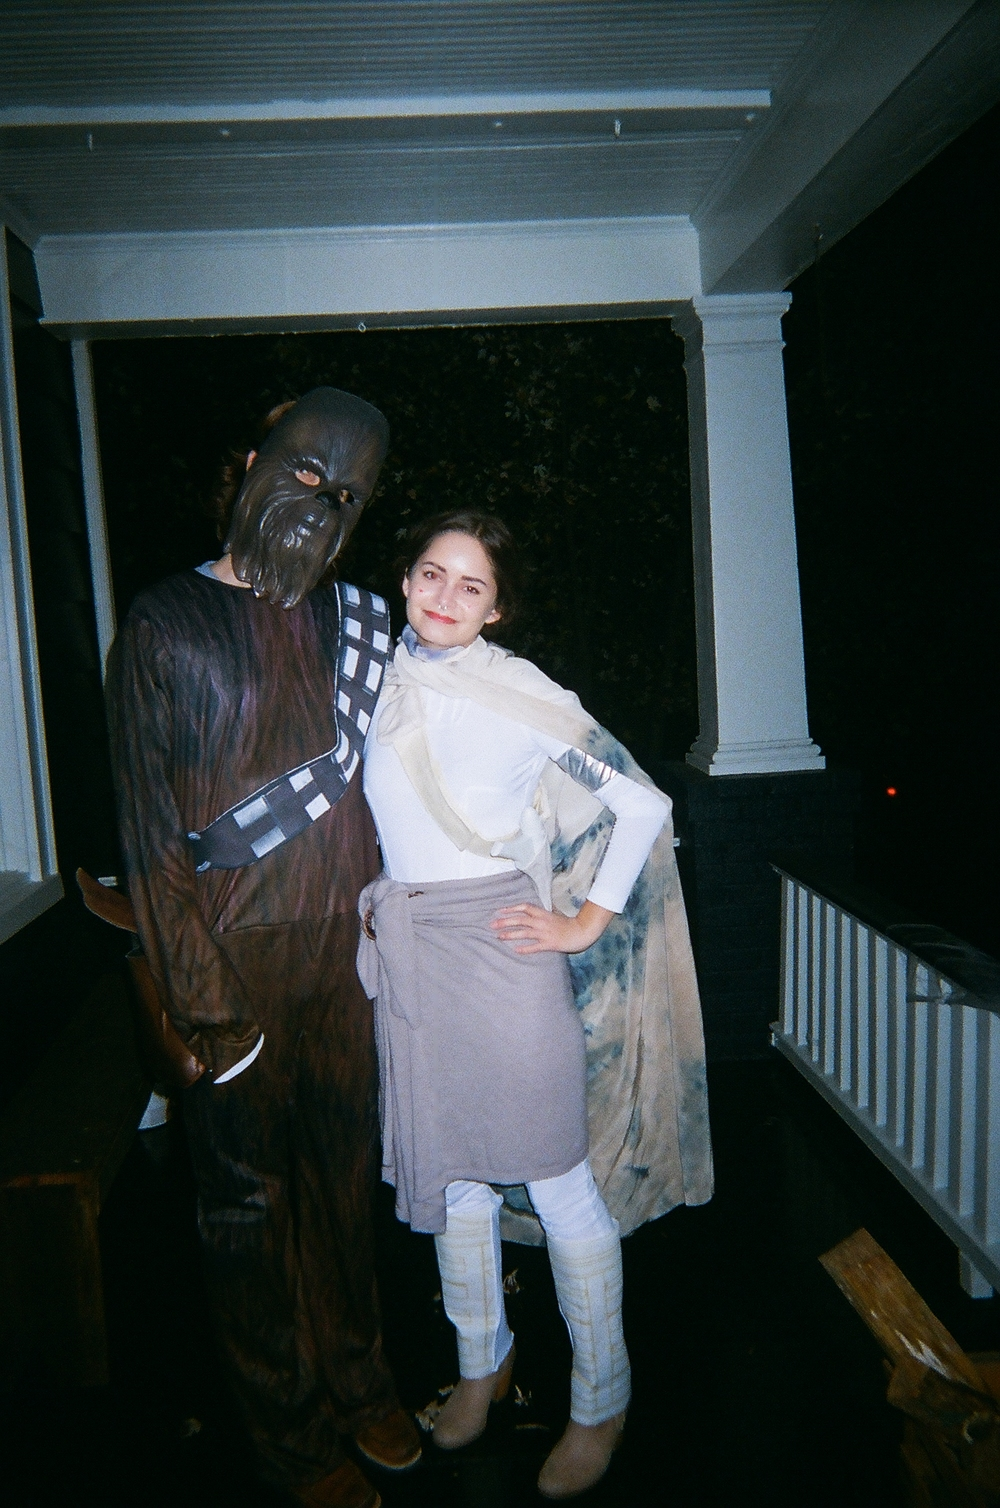 Halloween!!! My Chew-boo and myself as Padme Amidala. I'm into everything including fantasy and video games. Thanks, Dad!